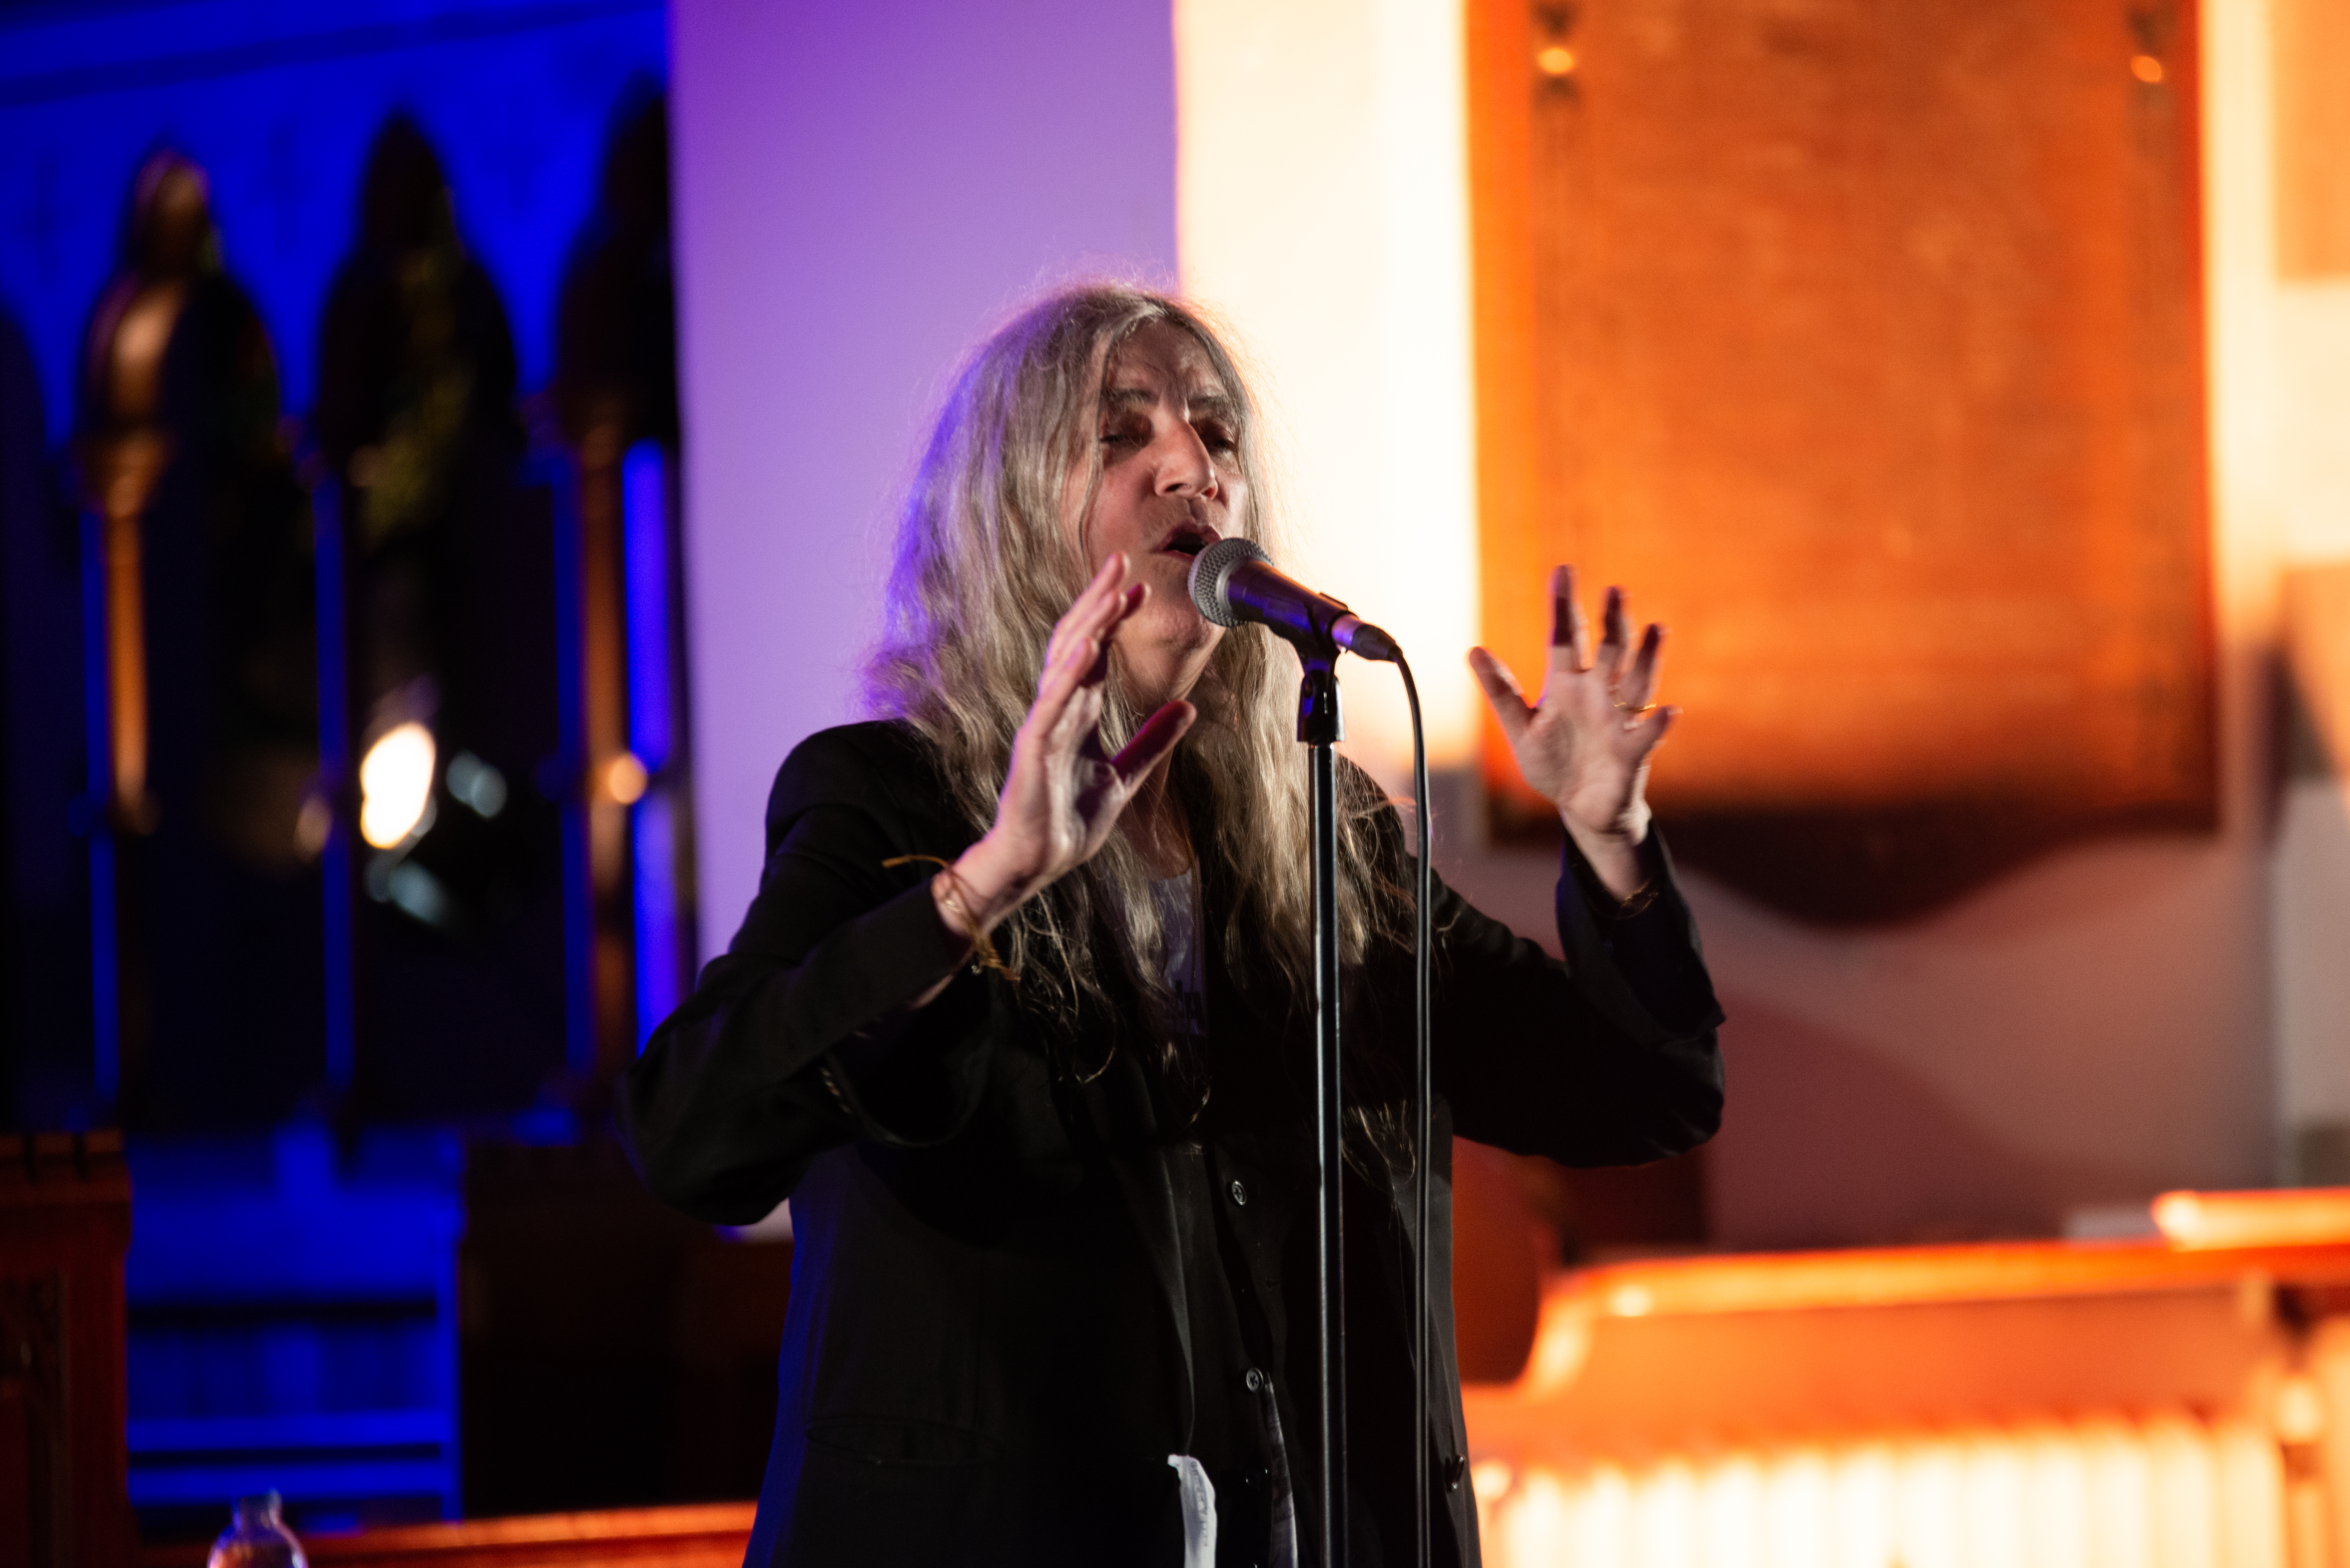 Patti Smith – Festival of Voice: St John's Church, Cardiff, 11/06/2018